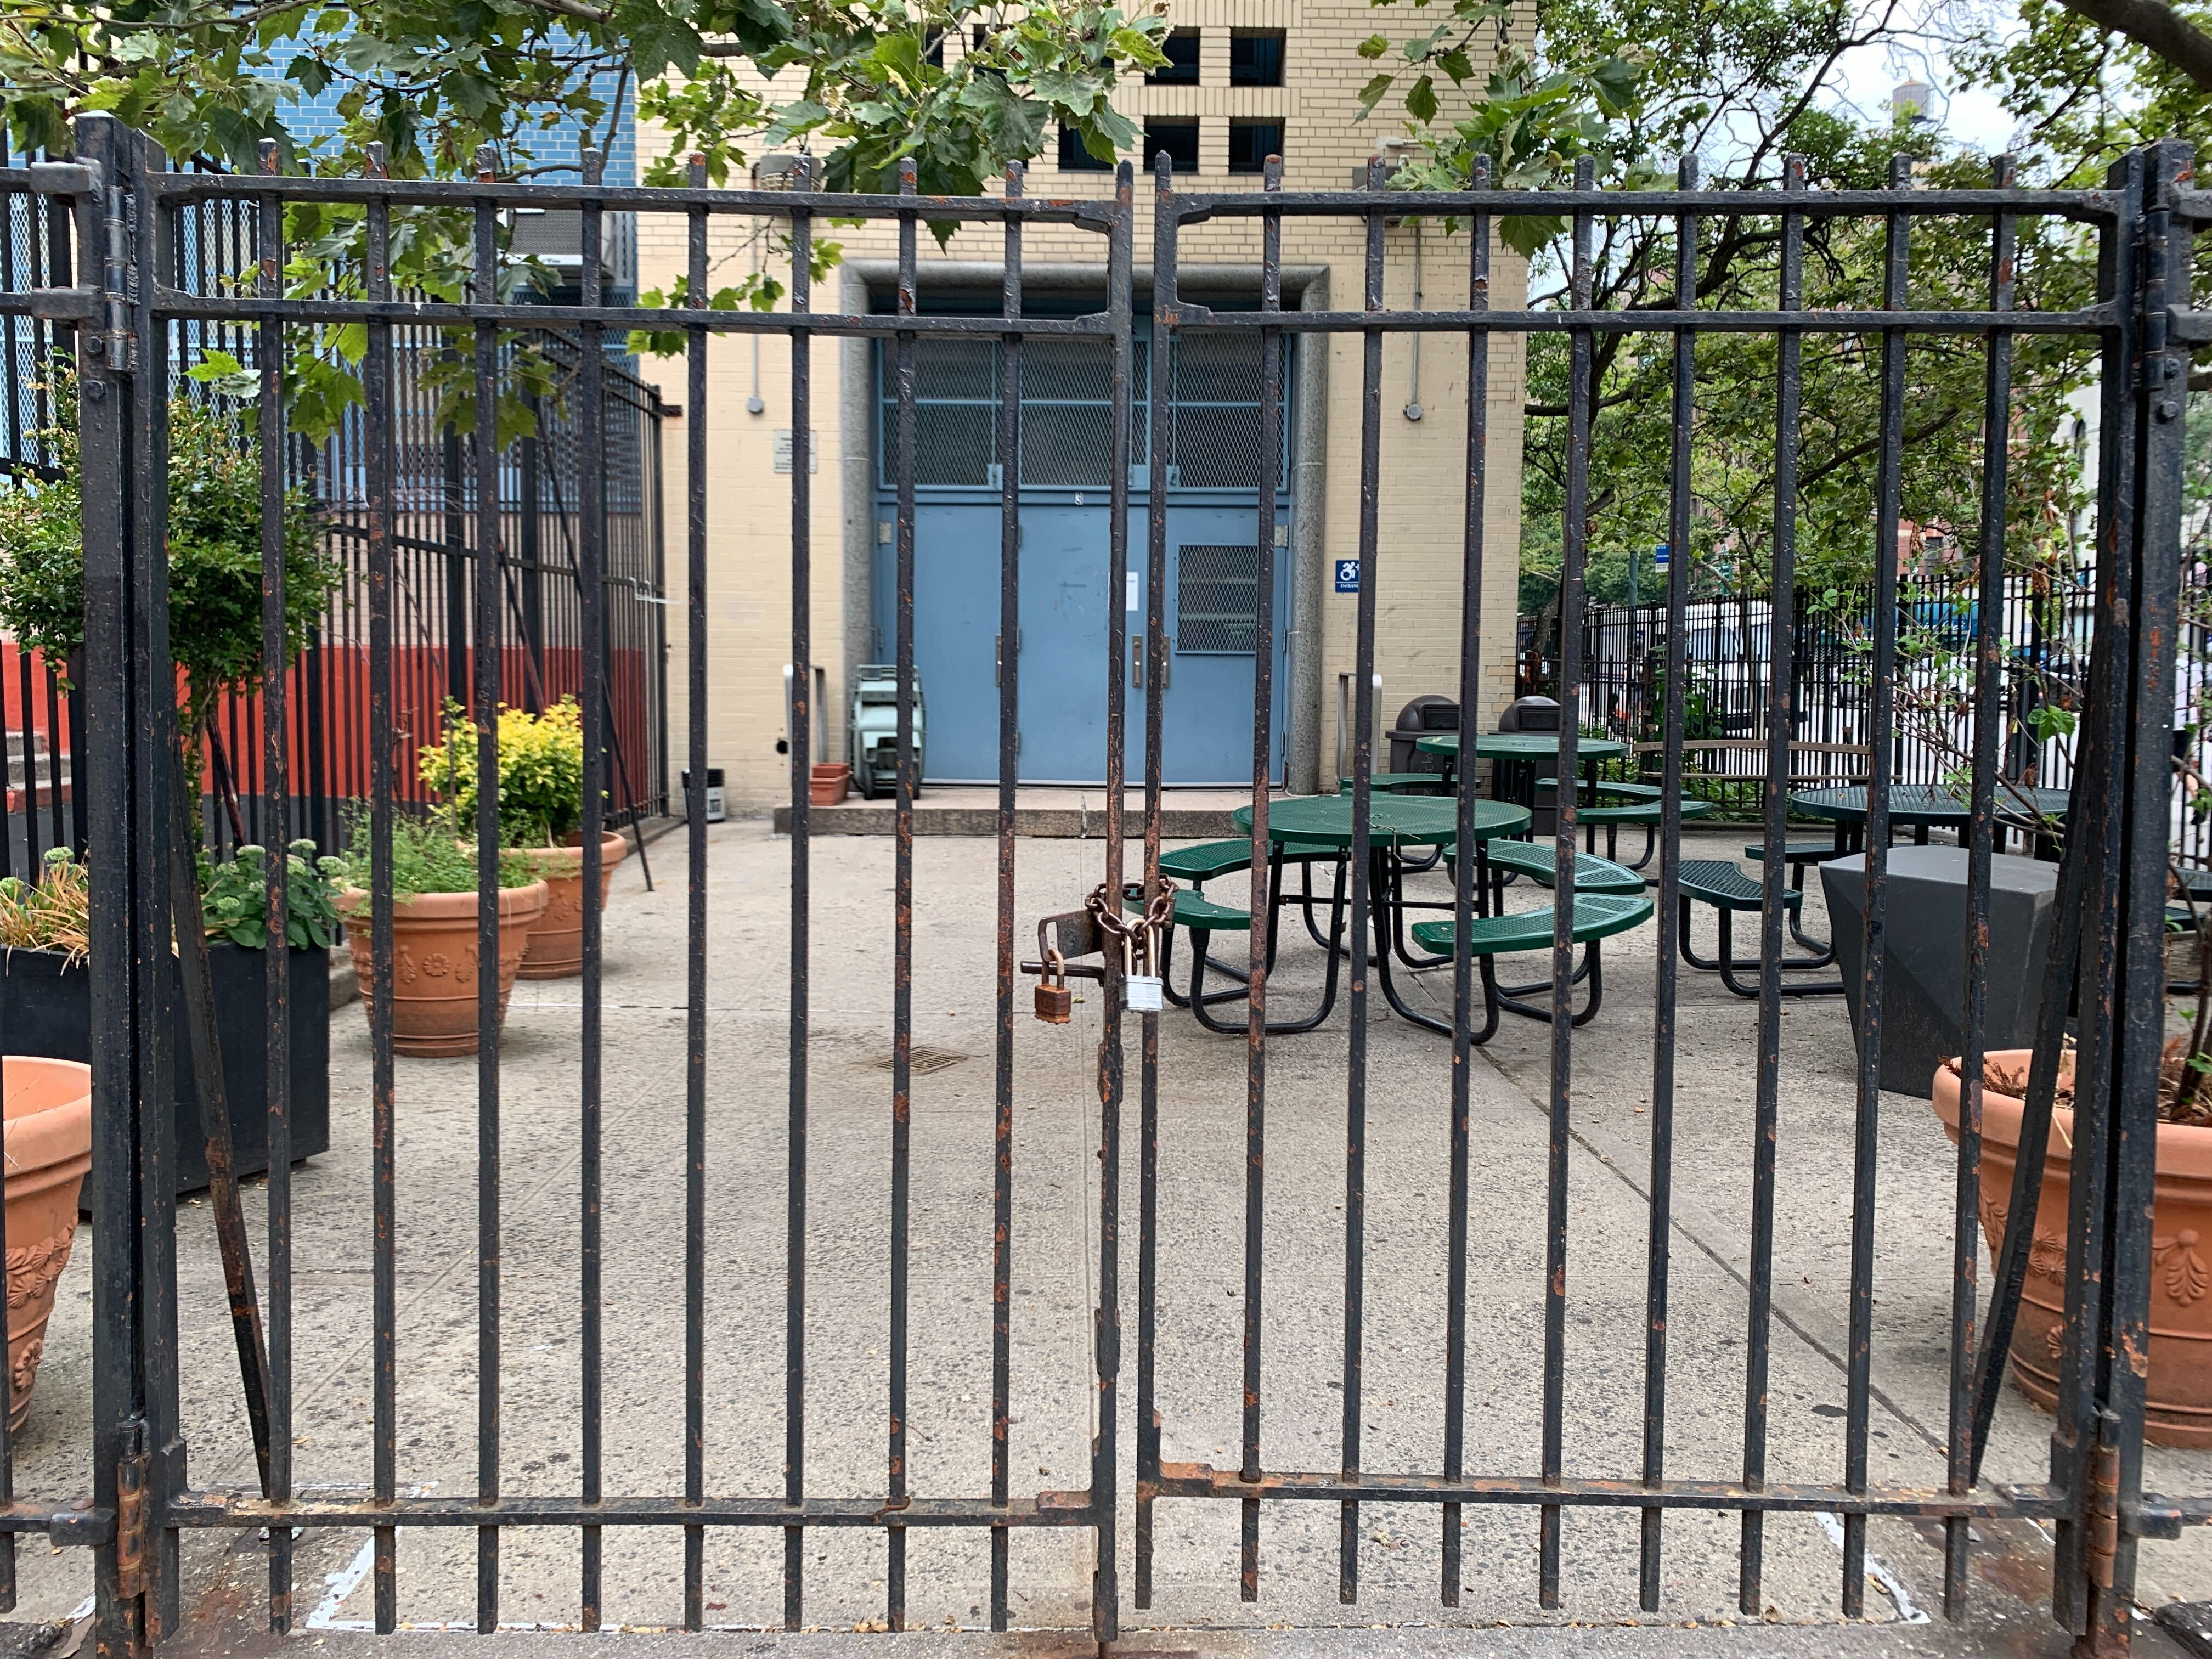 A shot of the locked gates at PS 9 on the Upper West Side.